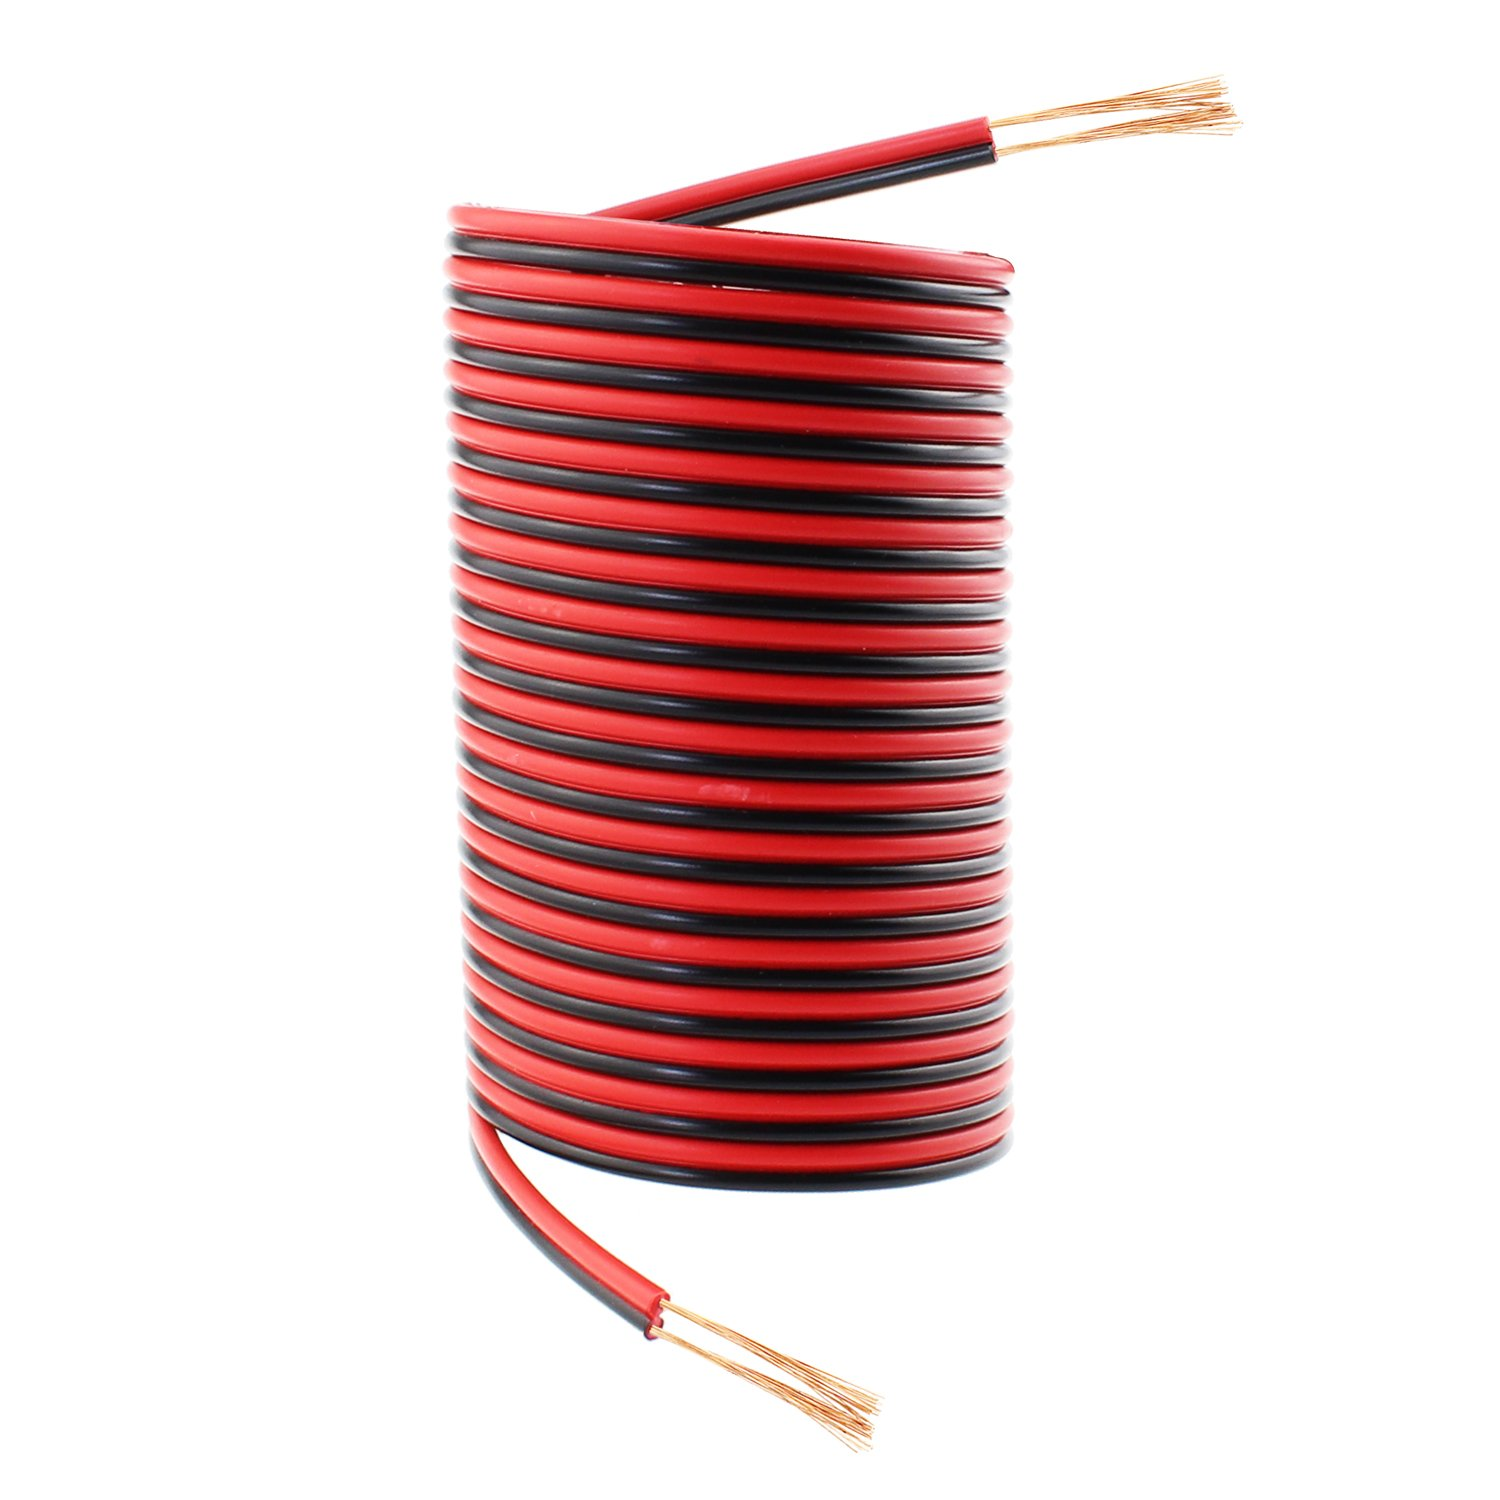 18 Gauge 50Ft Red Black Hookup Electrical Wire, SIM&NAT 18 AWG Extension Copper Audio Cord Speaker Cable for LED Ribbon Lamp Light